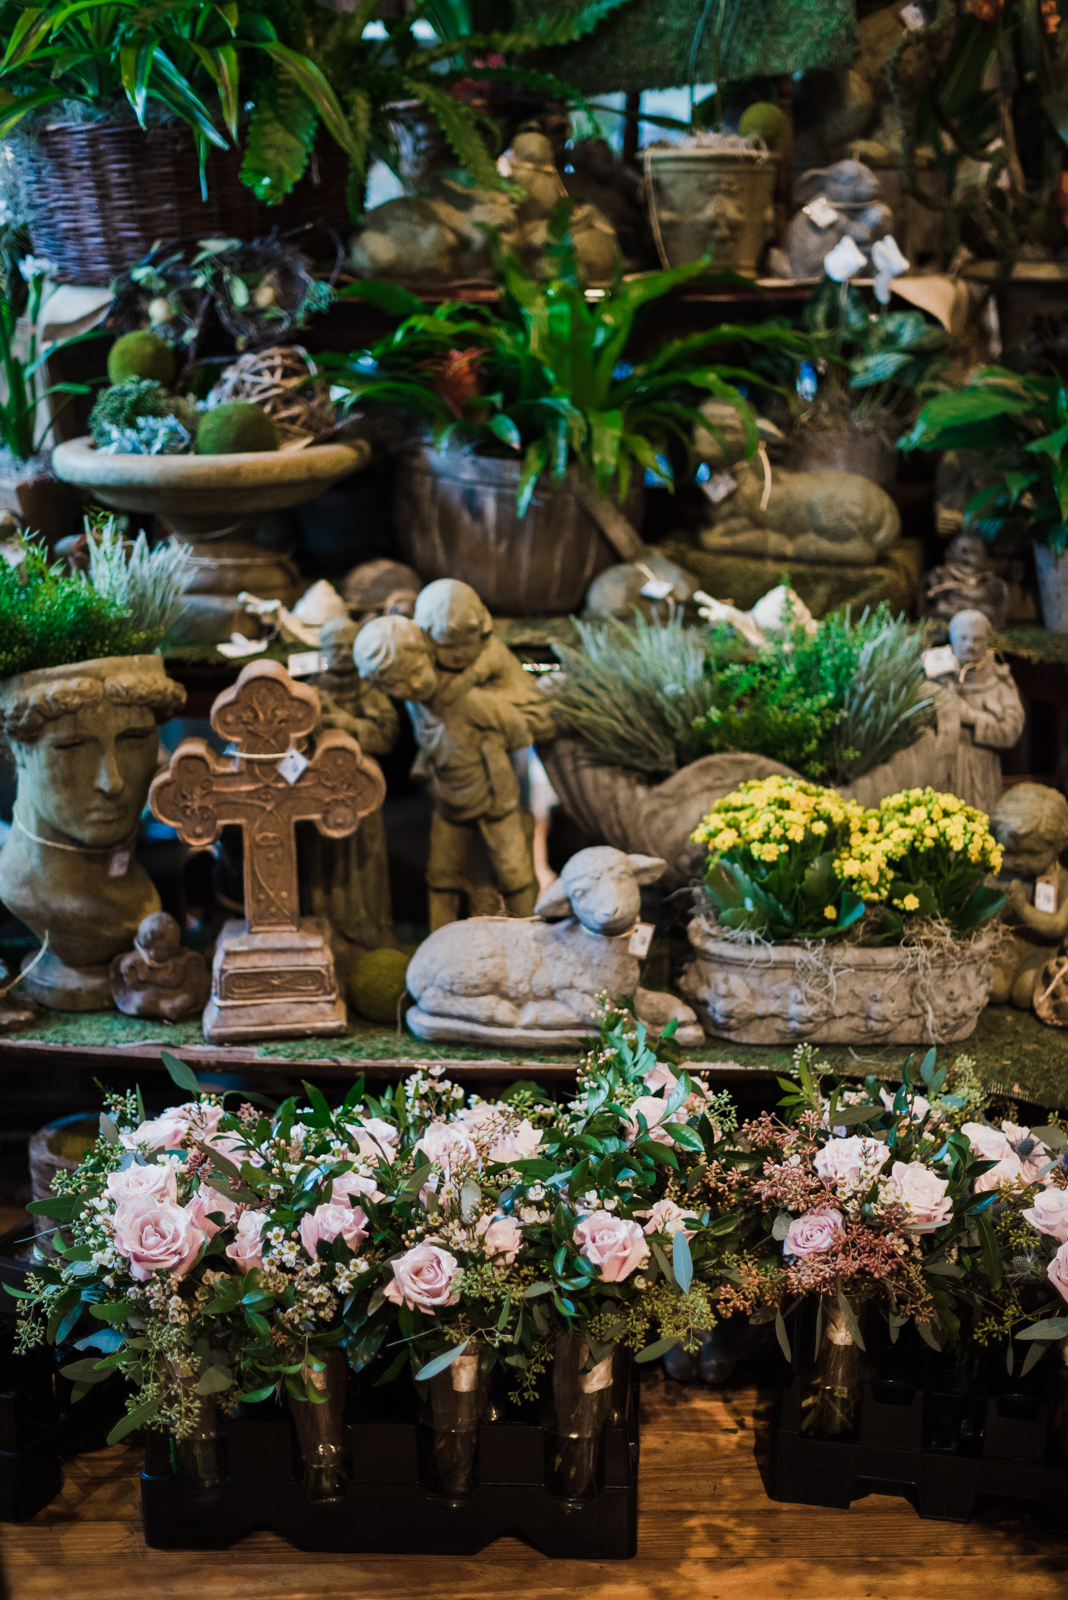 Blooms_Garden_Shop_Hattiesburg_Vendor_Florist-14.jpg